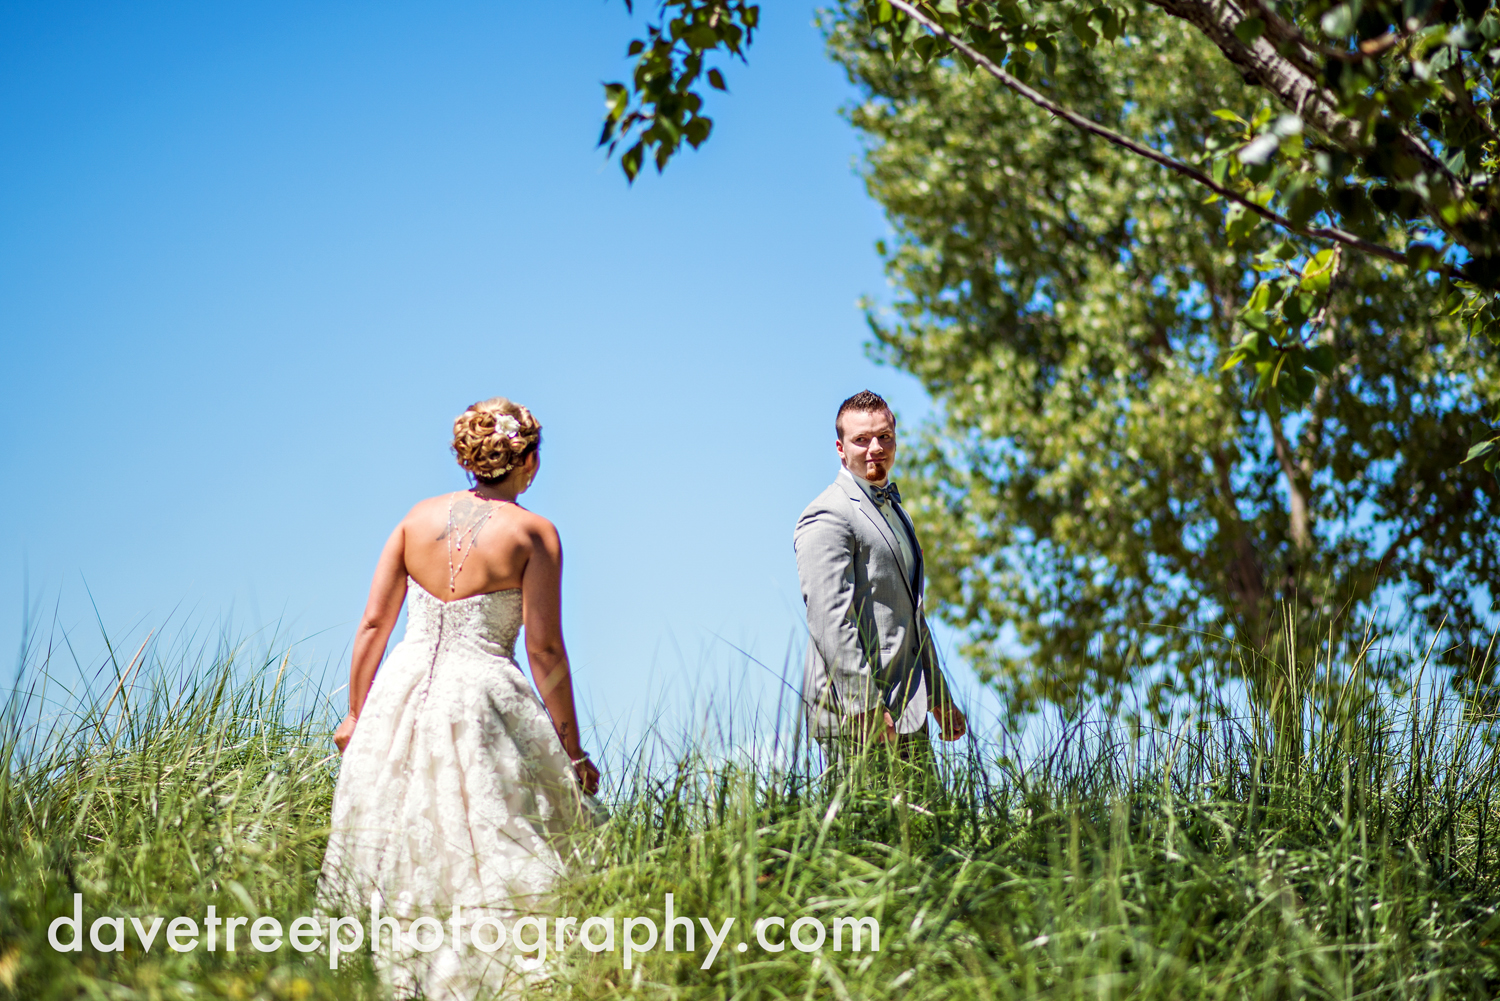 veranda_wedding_photographer_st_joseph_wedding_134.jpg